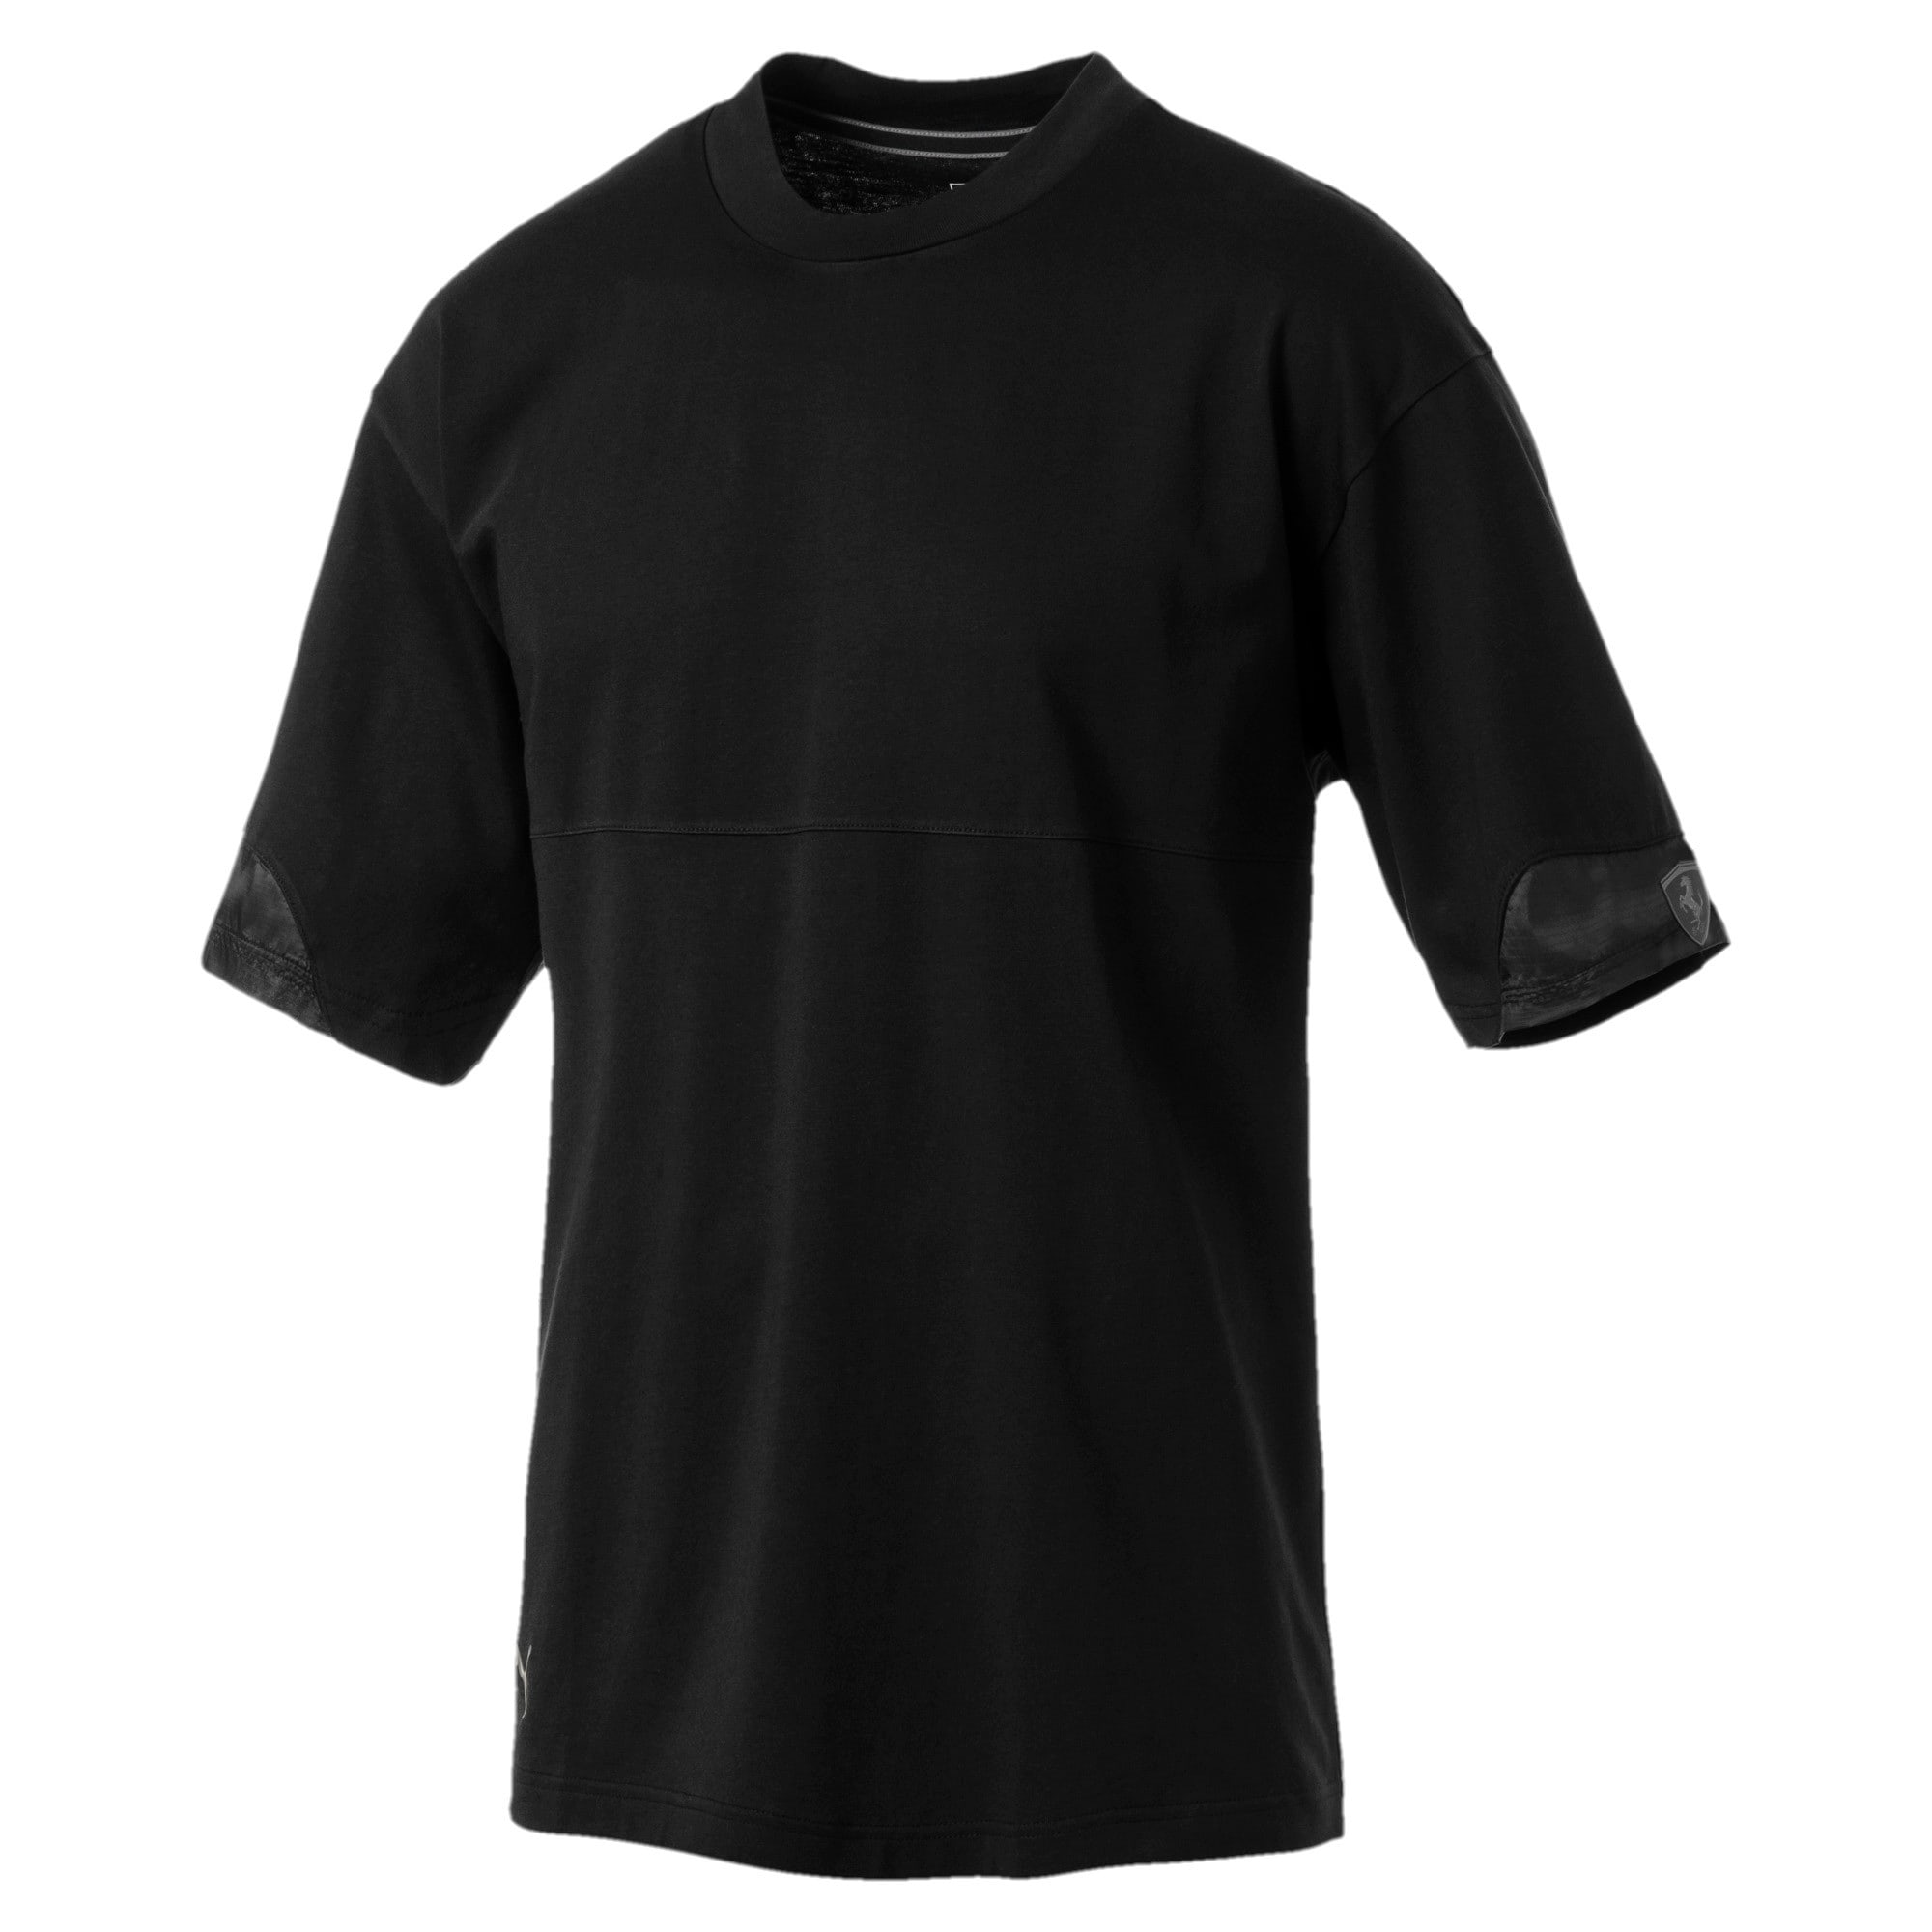 Thumbnail 1 of Ferrari Lifestyle Men's Tee, Puma Black, medium